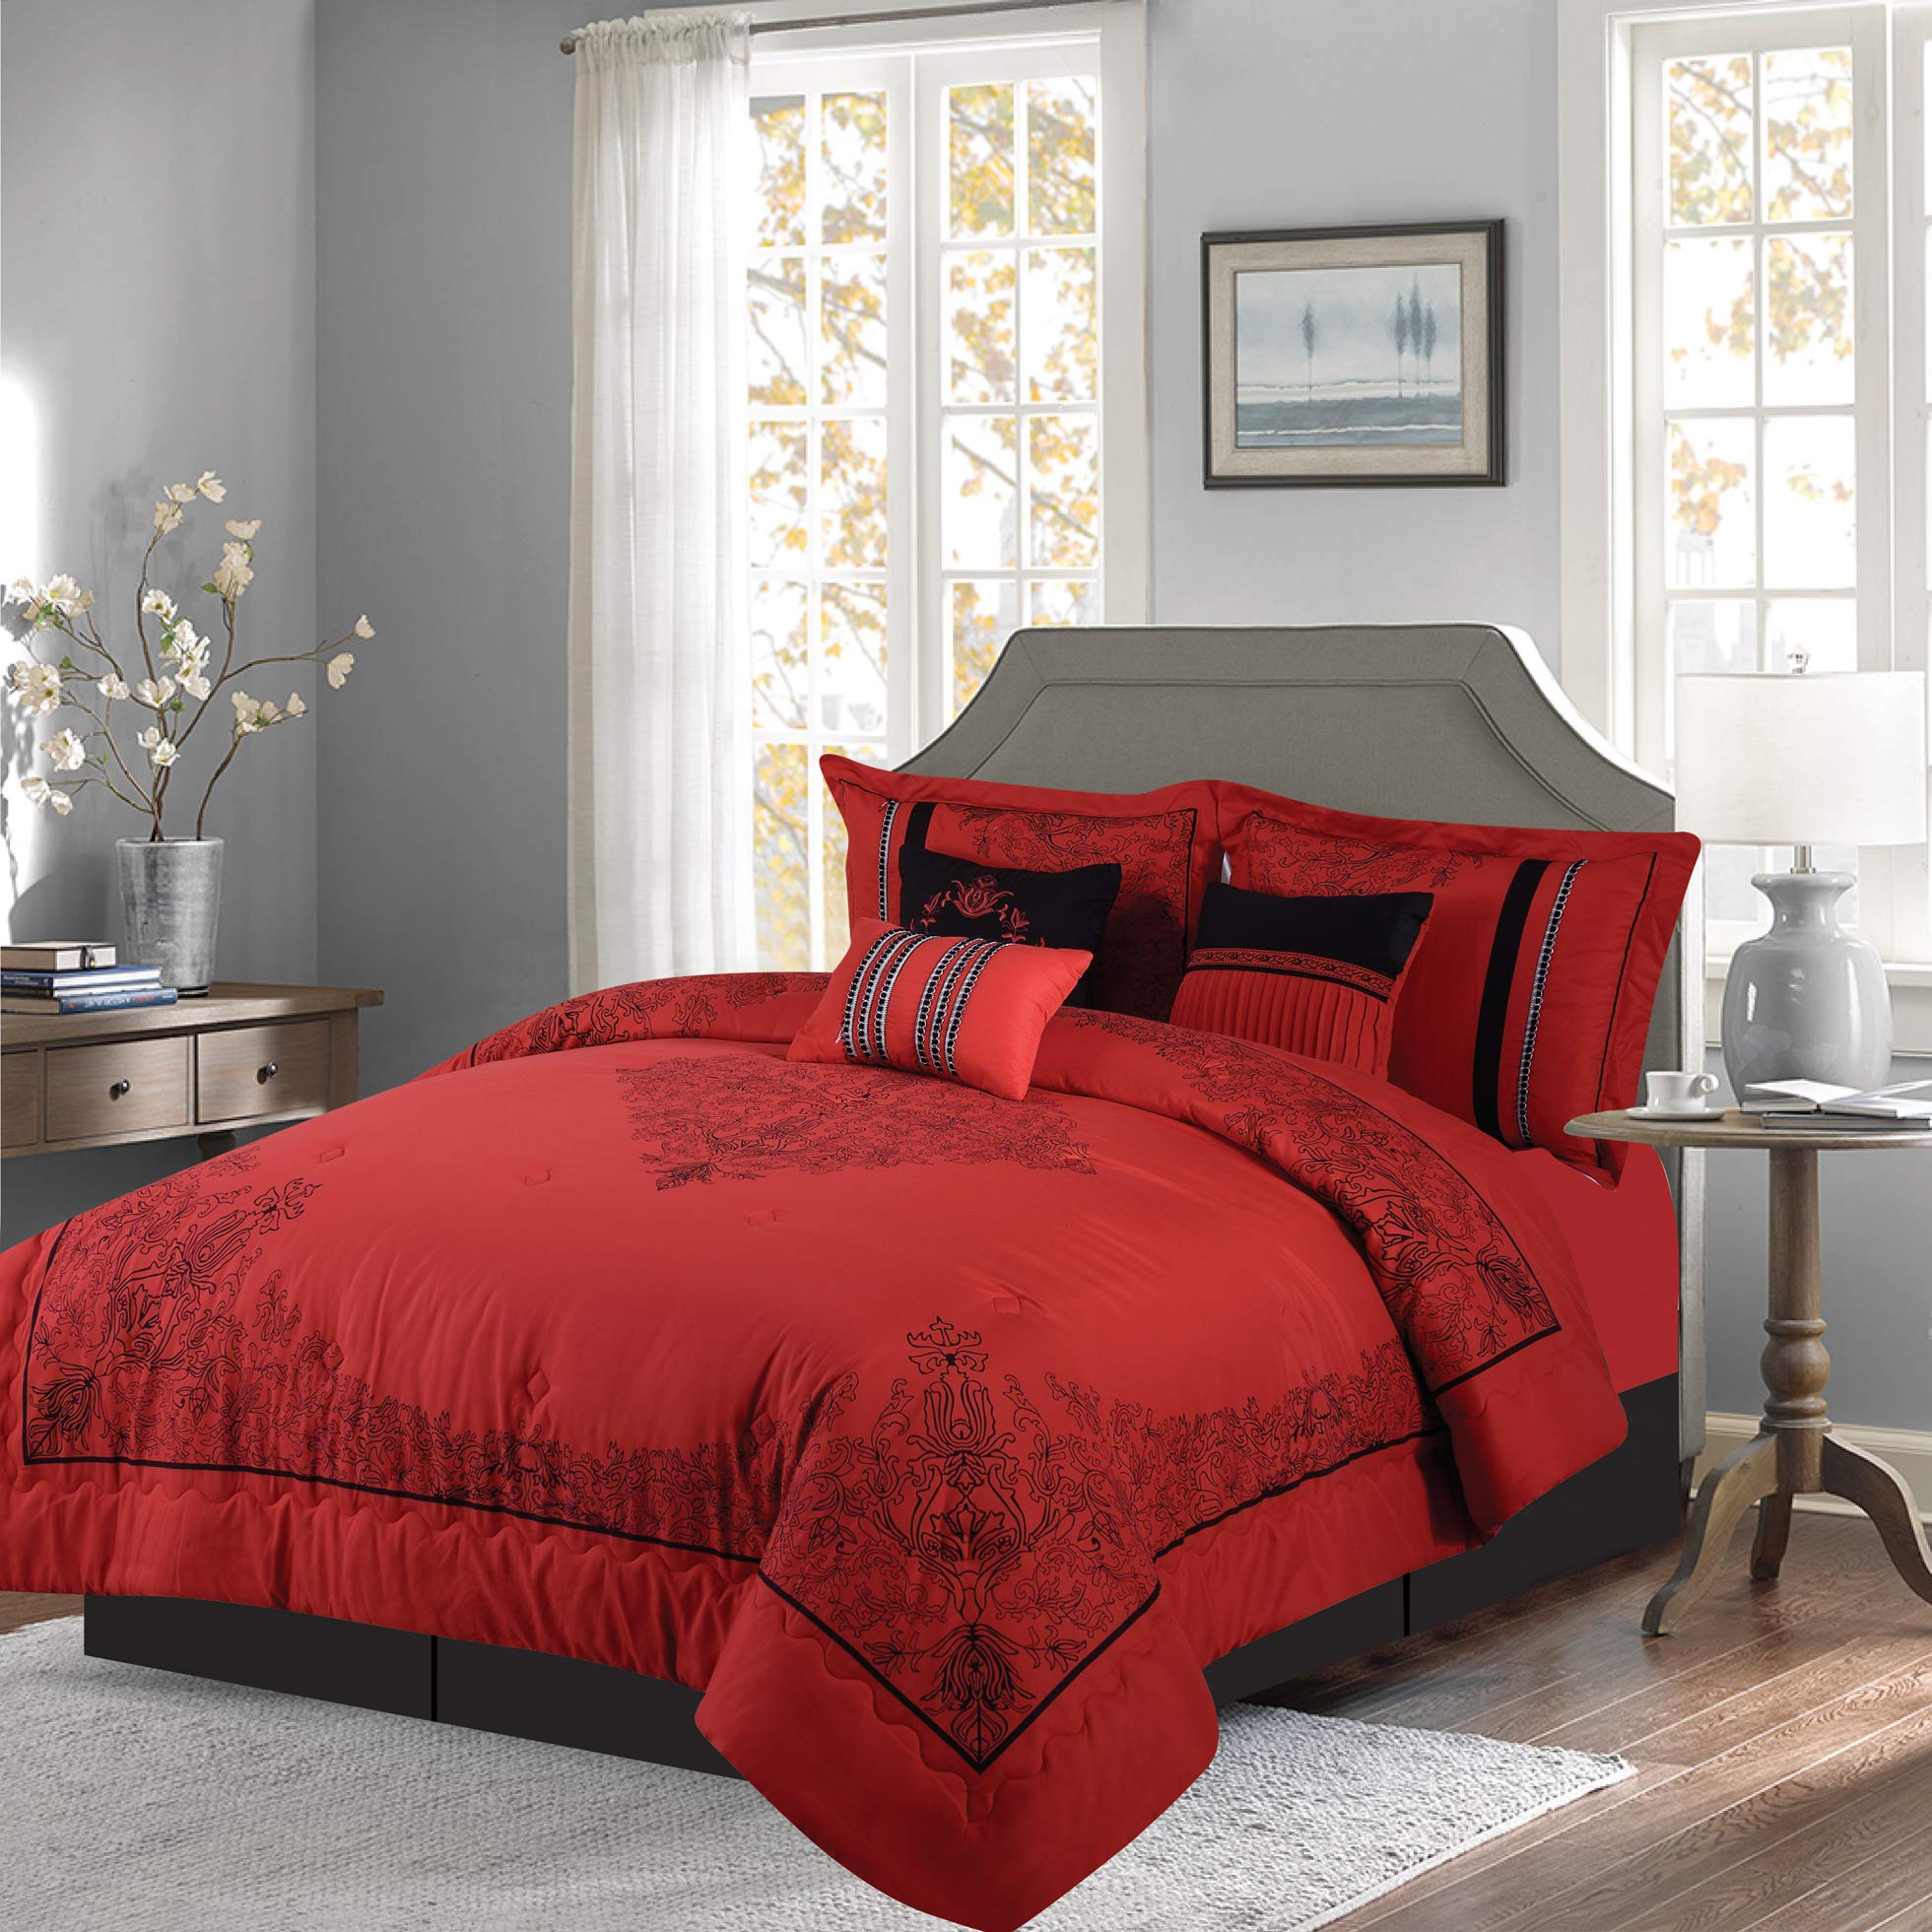 Empire Home 7 Piece Nadia Oversized Elegant Comforter Set - Royalty Design (Red, California King)